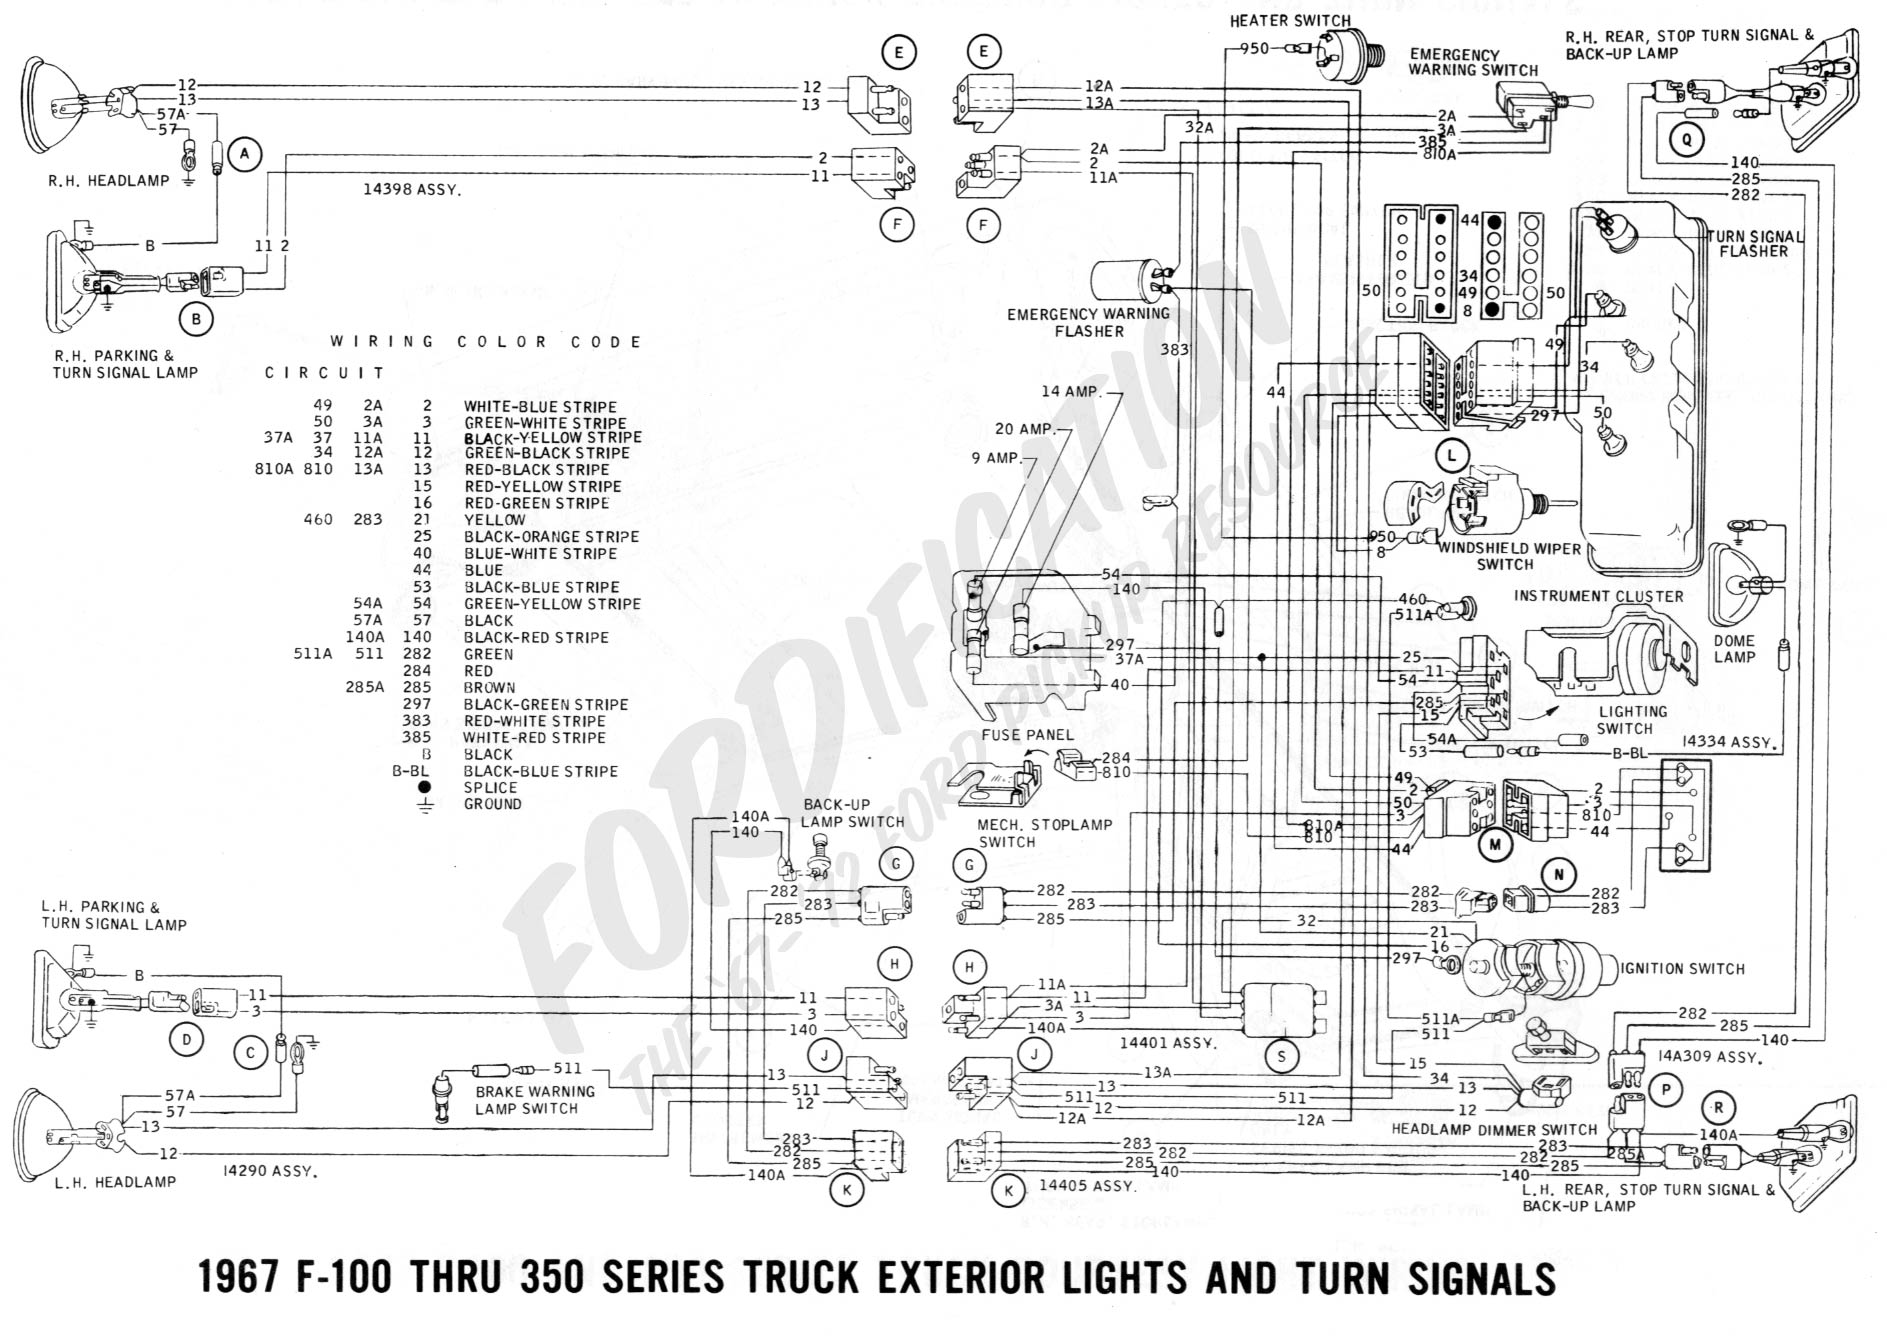 1963 Ford Thunderbird Electrical Wiring Diagram Diagrams furthermore Ford Falcon Ranchero Parts Catalog additionally 1966 Mustang Car Drawings additionally 3910 Ford Tractor Wiring Diagram in addition 68 Ranchero Wiring Diagram. on 1960 ford thunderbird wiring diagram